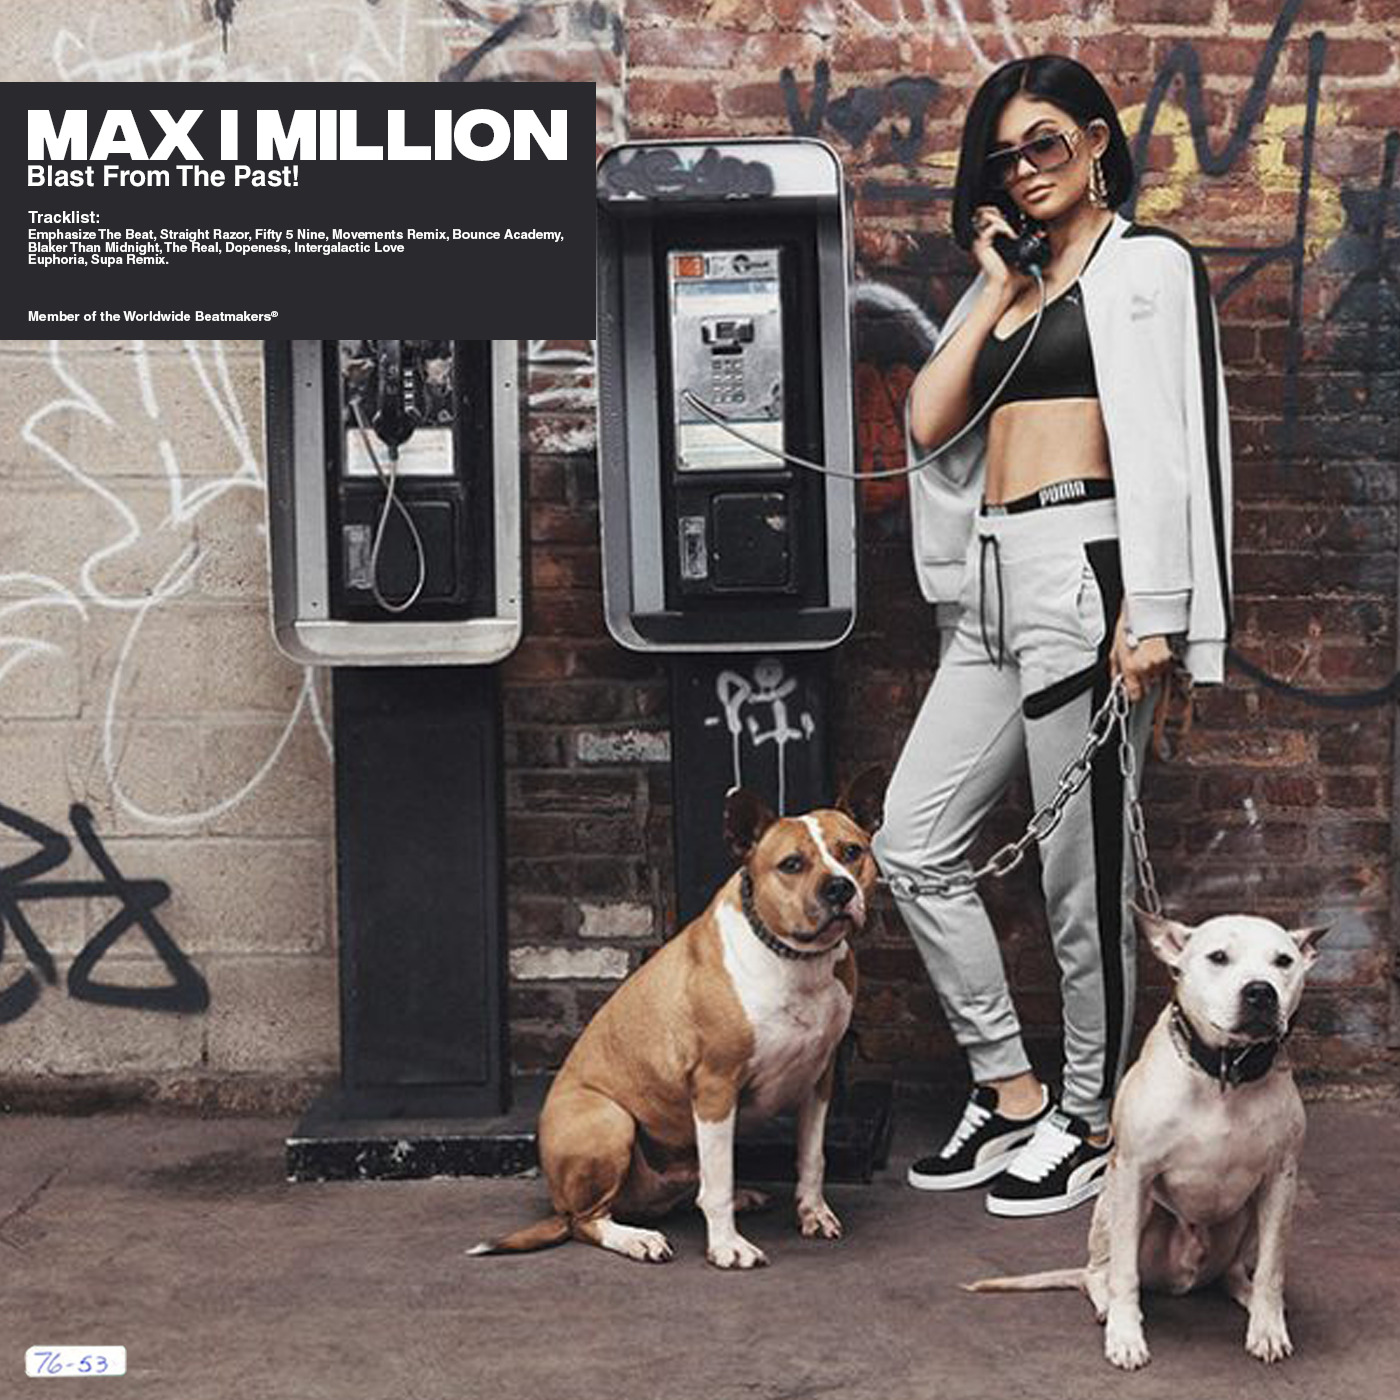 Max I Million - Blast From The Past